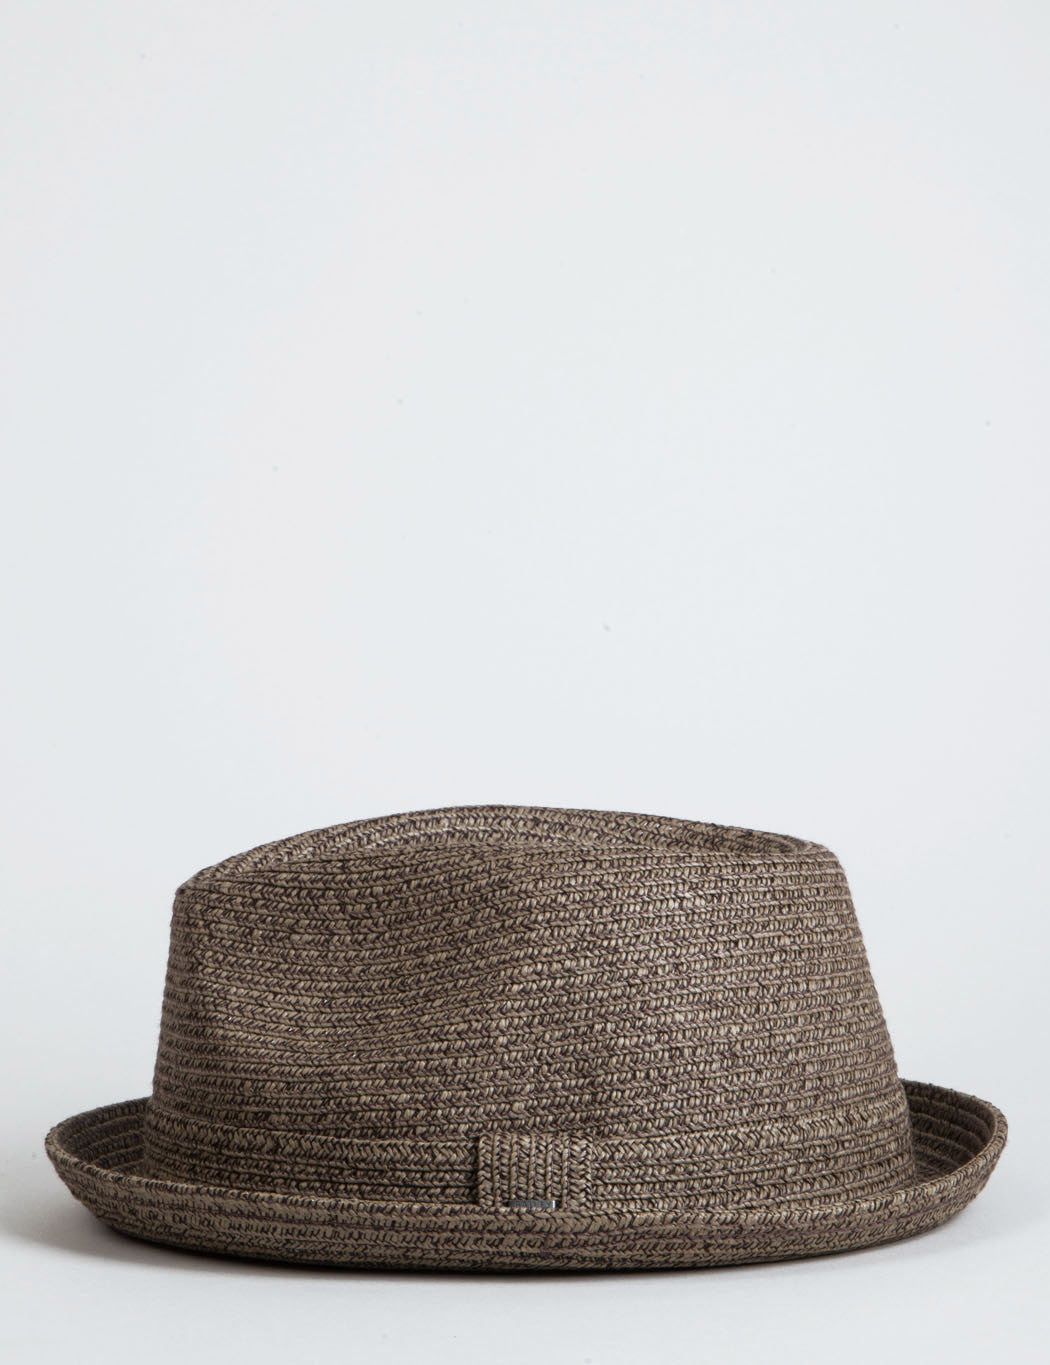 Bailey Billy Light Trilby Hat - Dark Chino